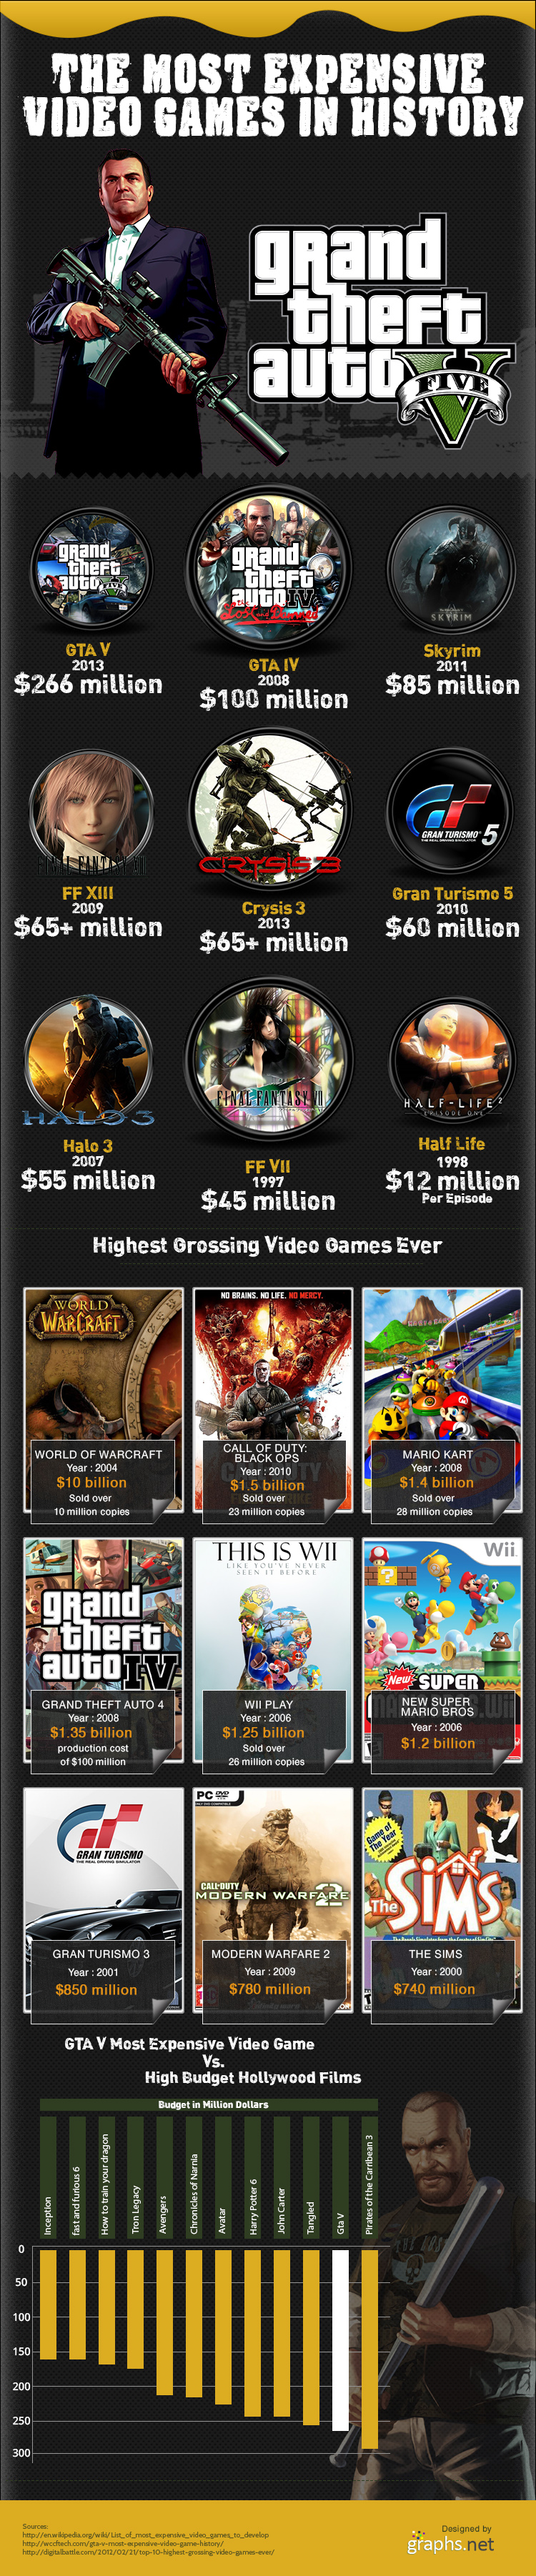 most expensive video games